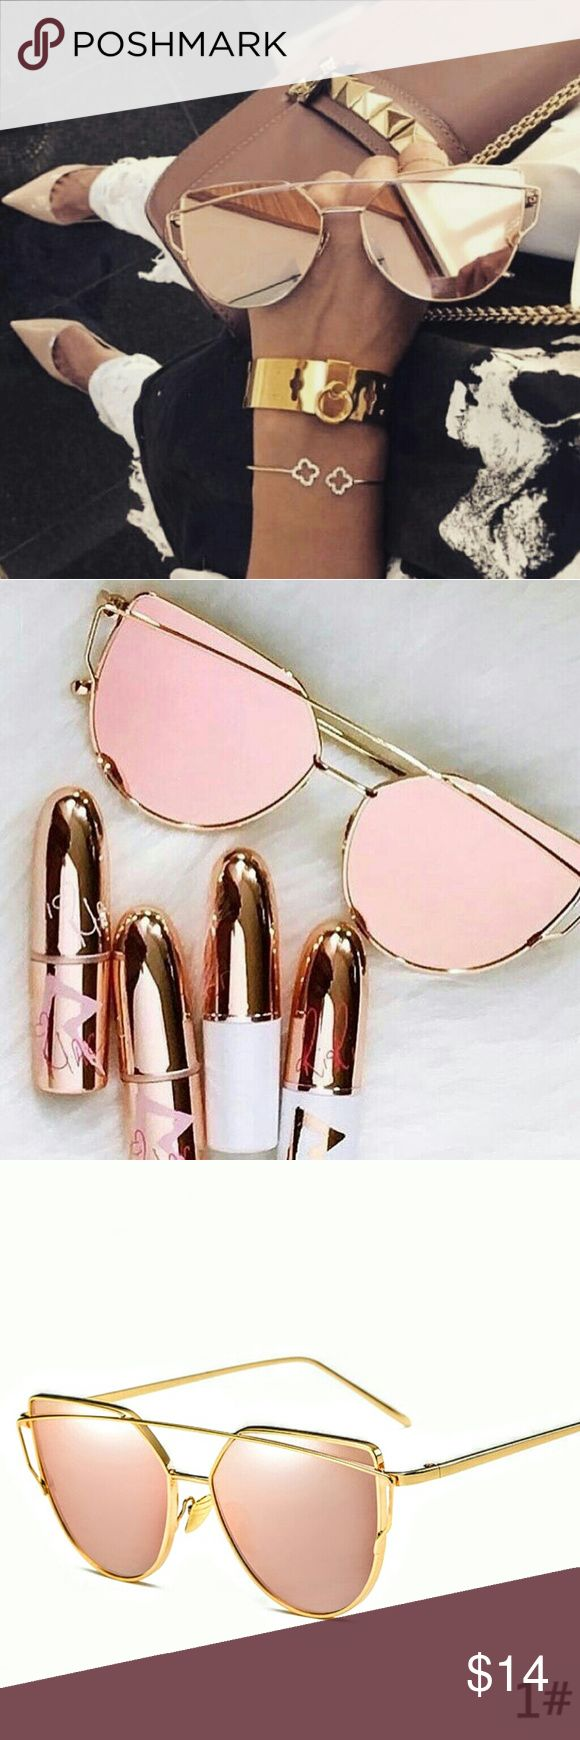 Rose gold luxury sunglasses with gold frame Fashion Women's Double Metal Nose Bridge Sunglasses Outdoor Driving Eyewear Accessories Glasses